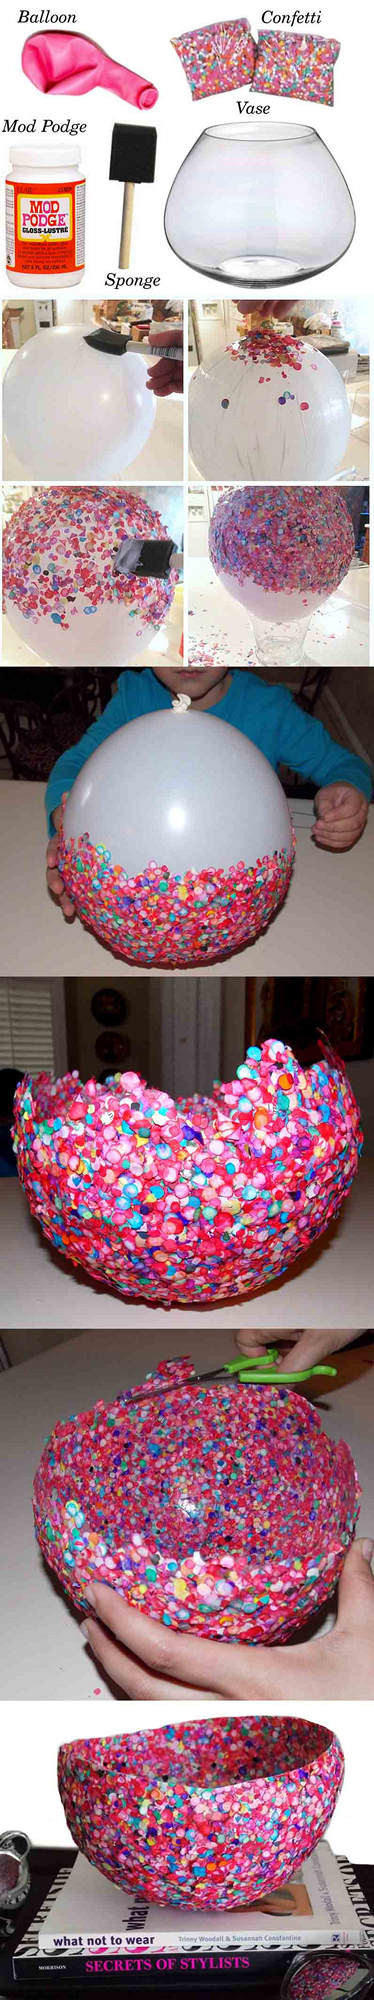 Best ideas about Easy Craft Ideas For Adults . Save or Pin 11 Simple DIY Craft Ideas for Adults Snappy Now.